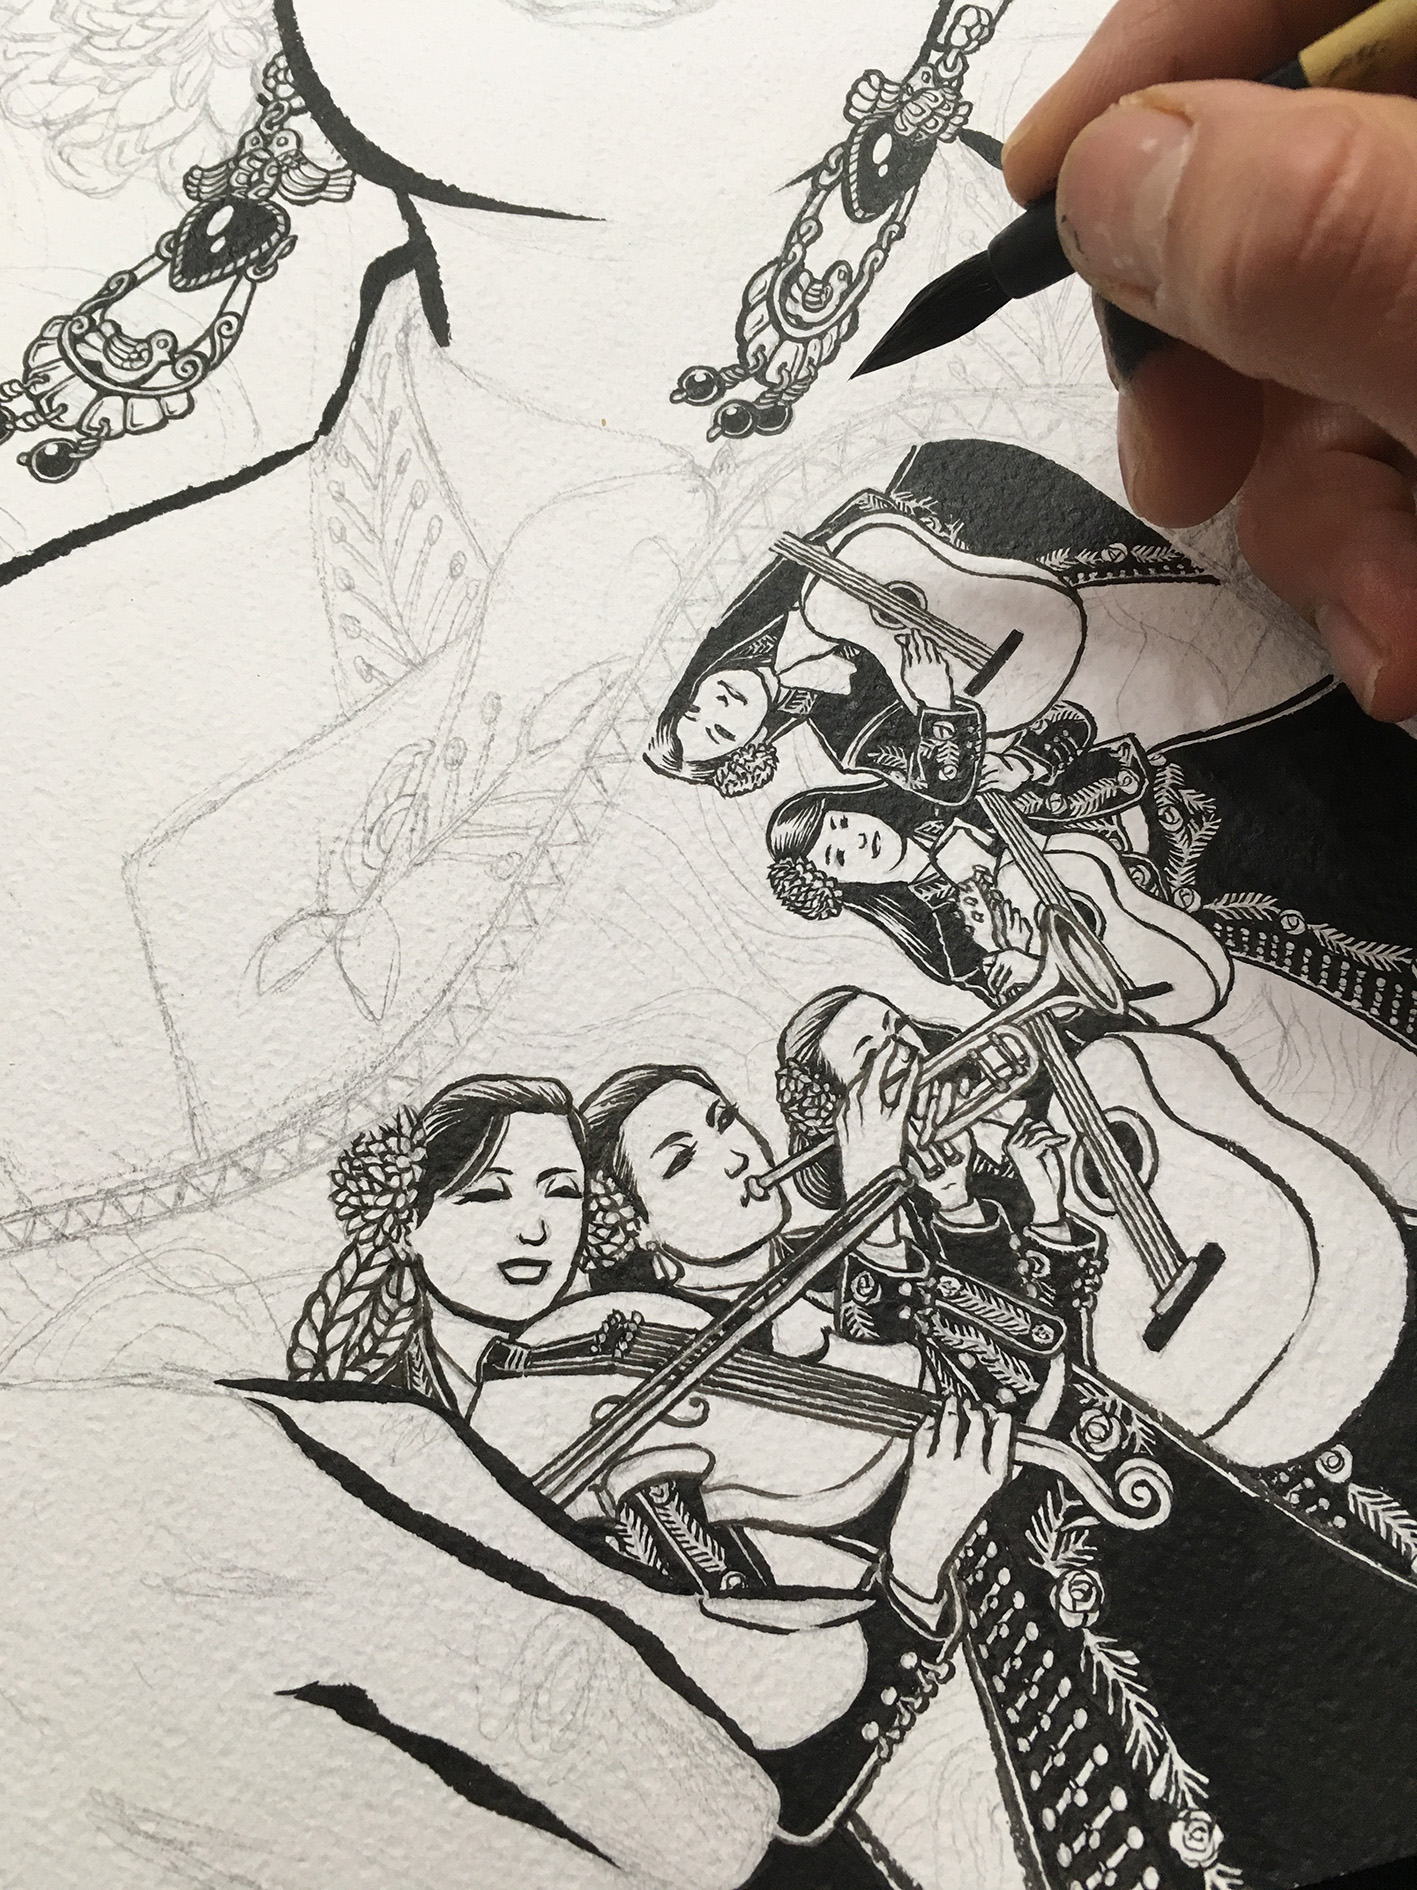 inking process 1